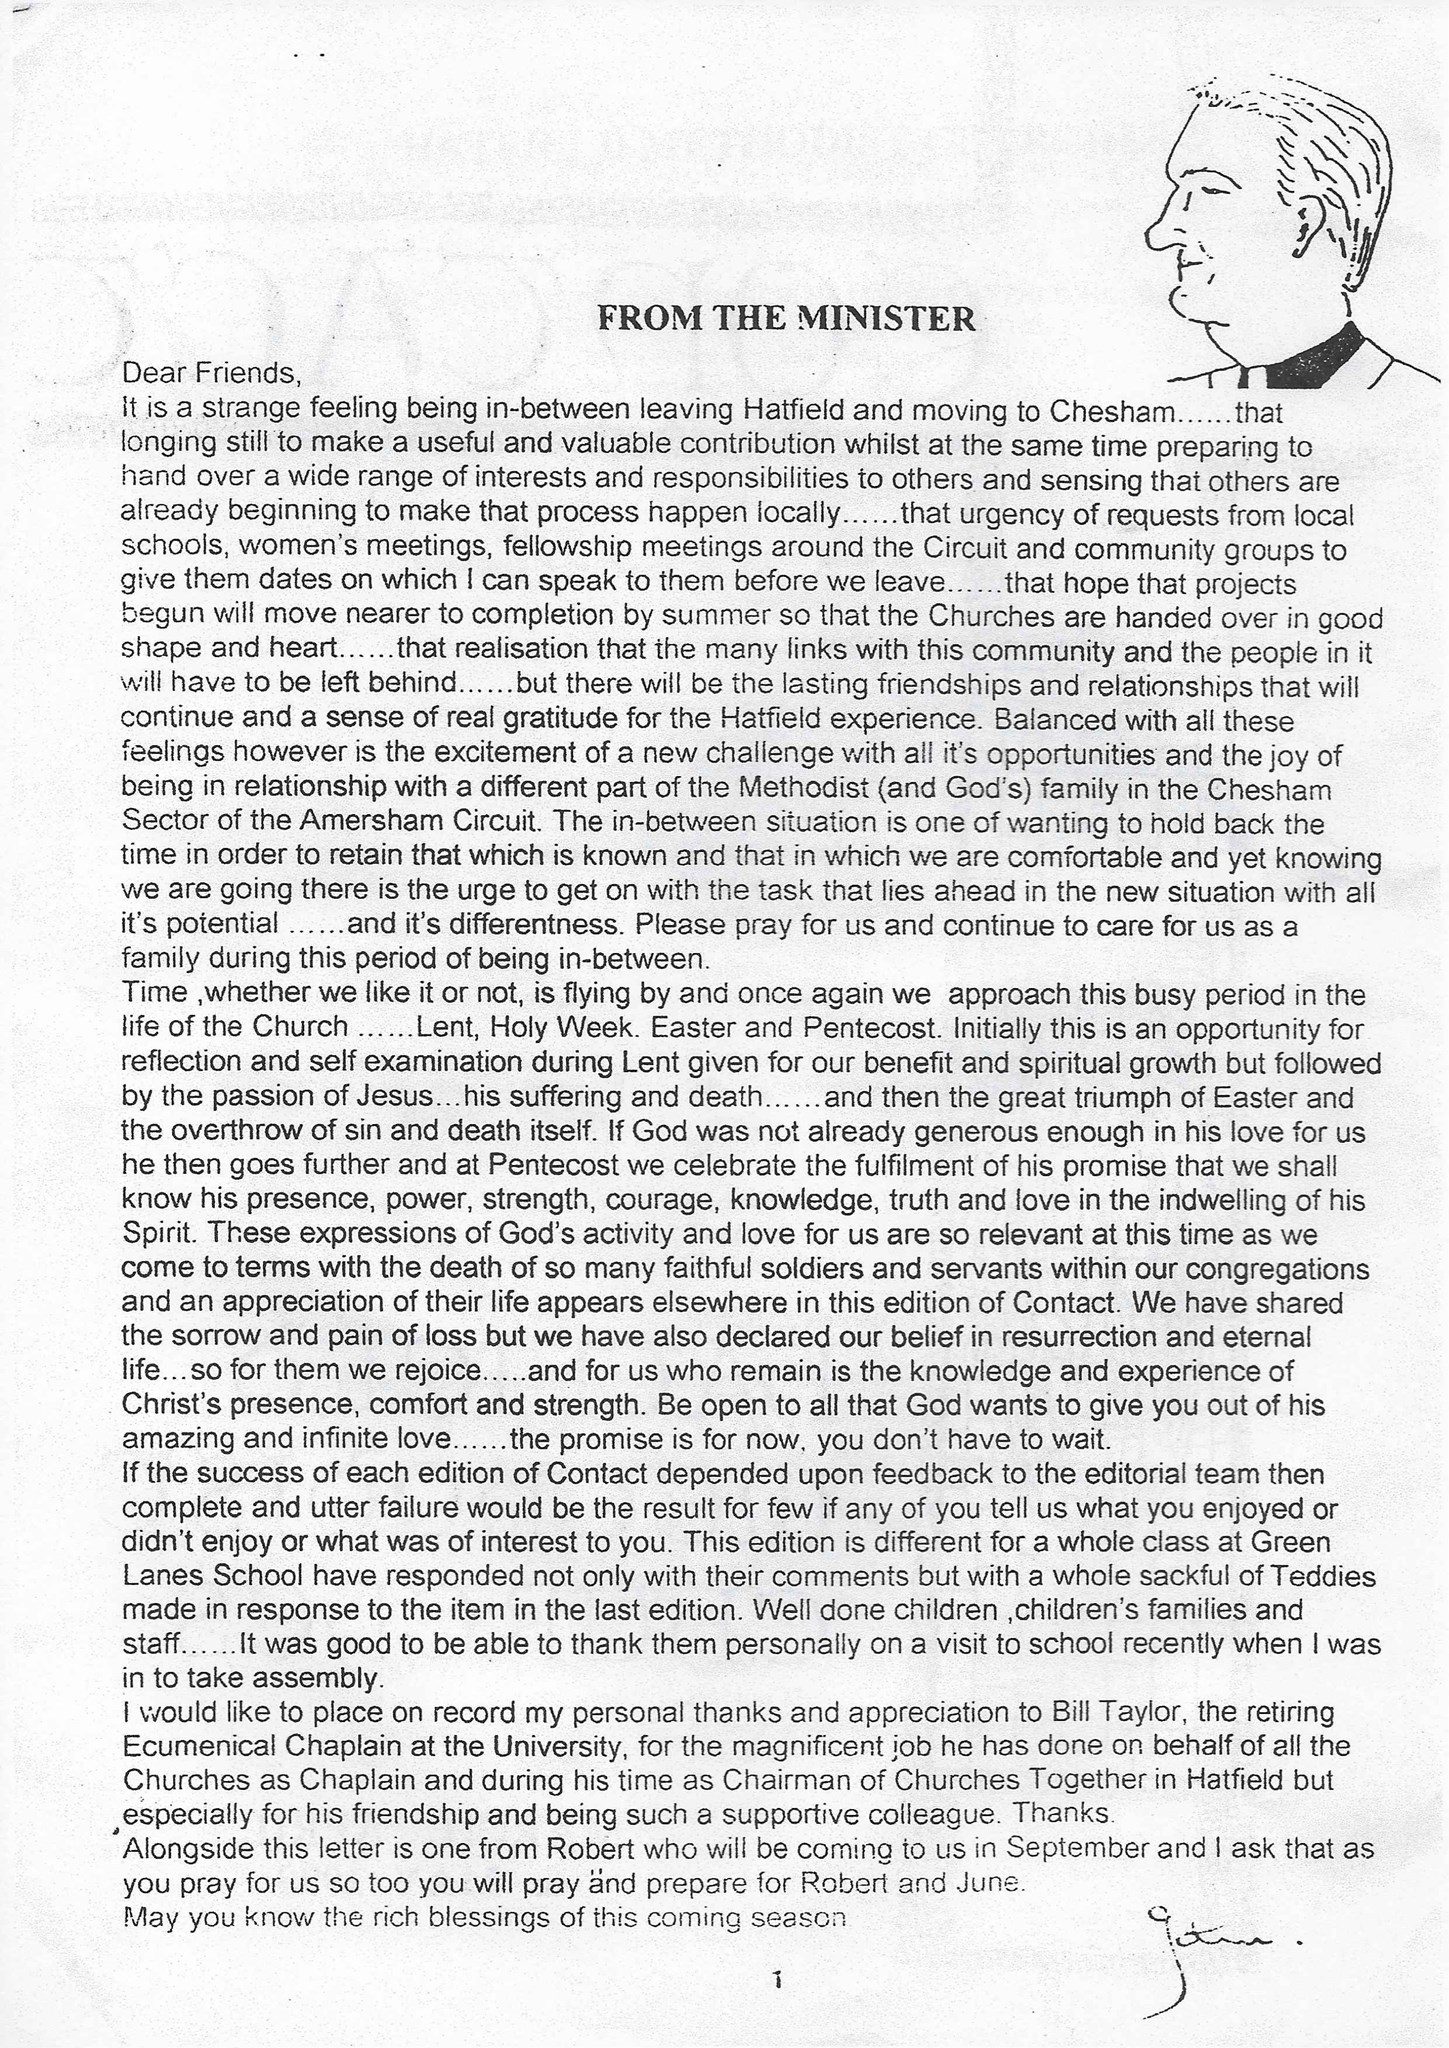 Final letter and cartoon from Hatfield.